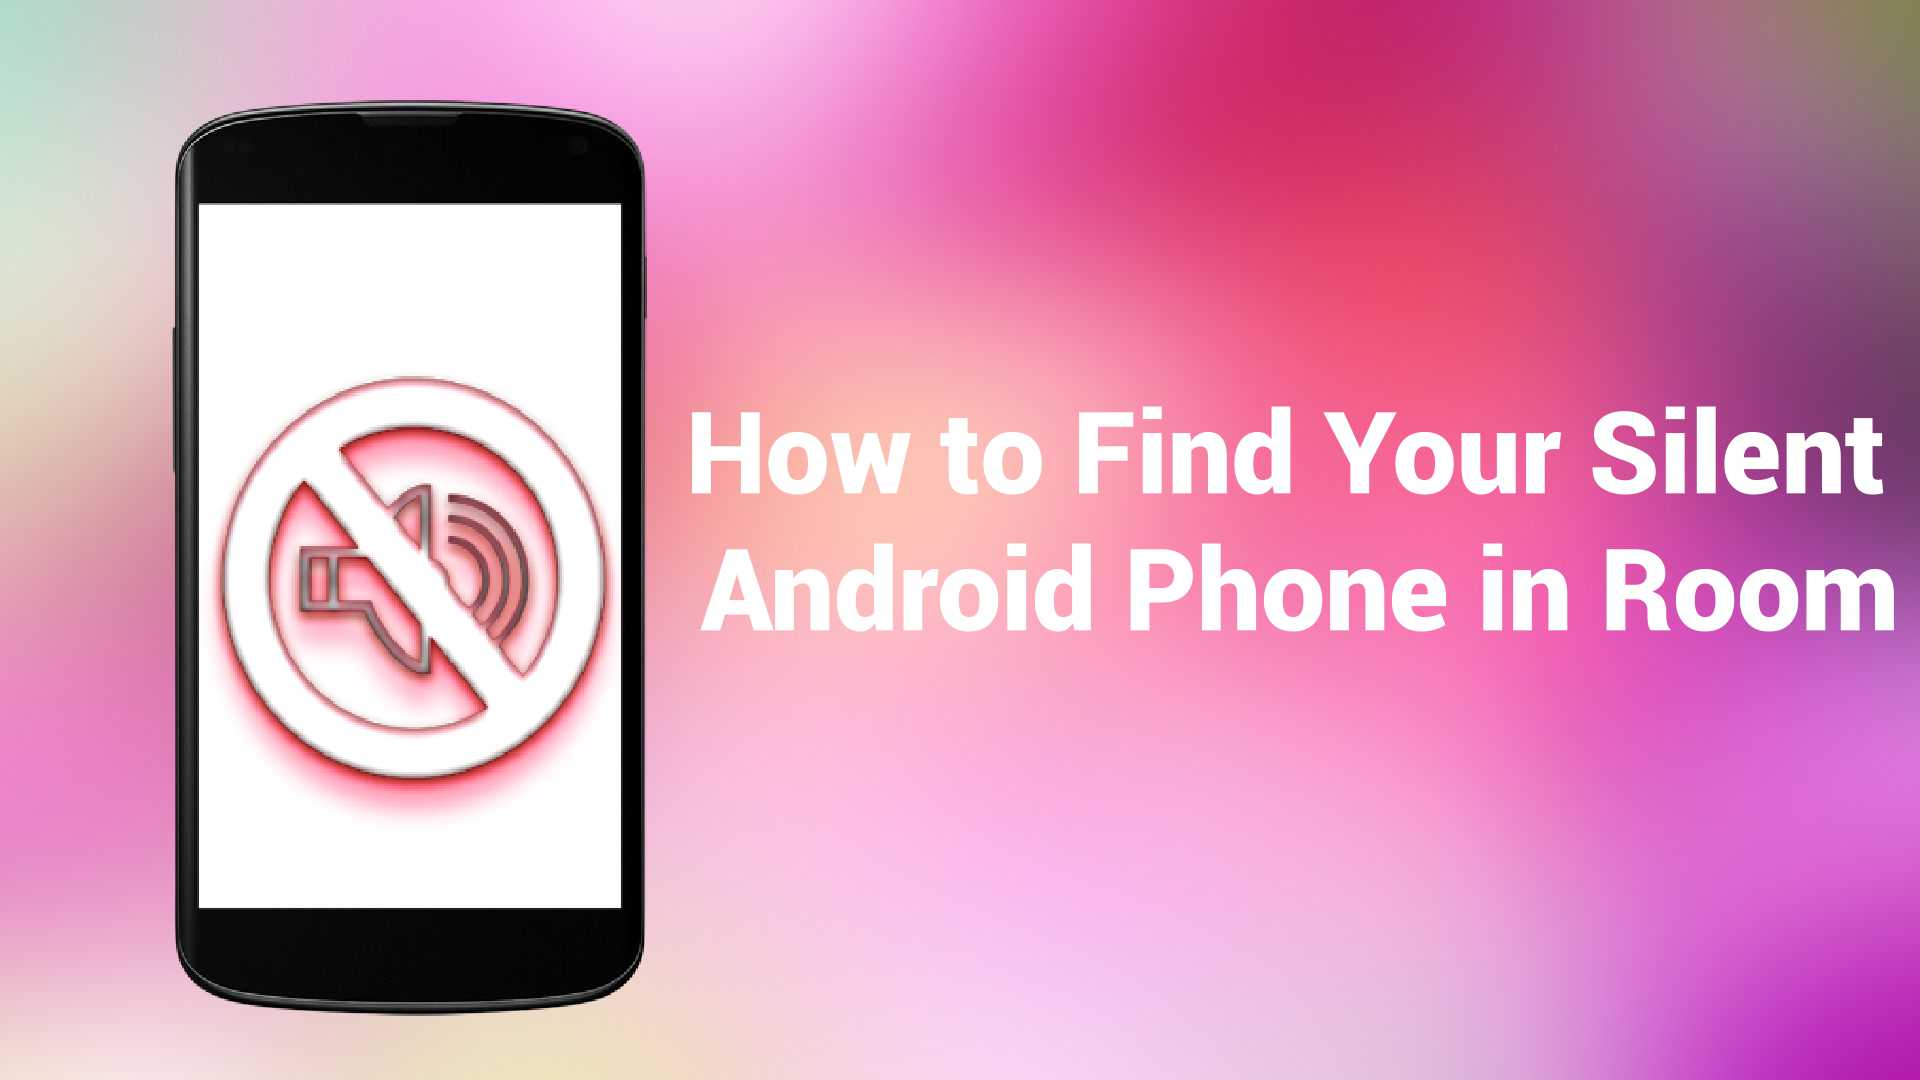 How to Find Your Silent Android Phone in Room